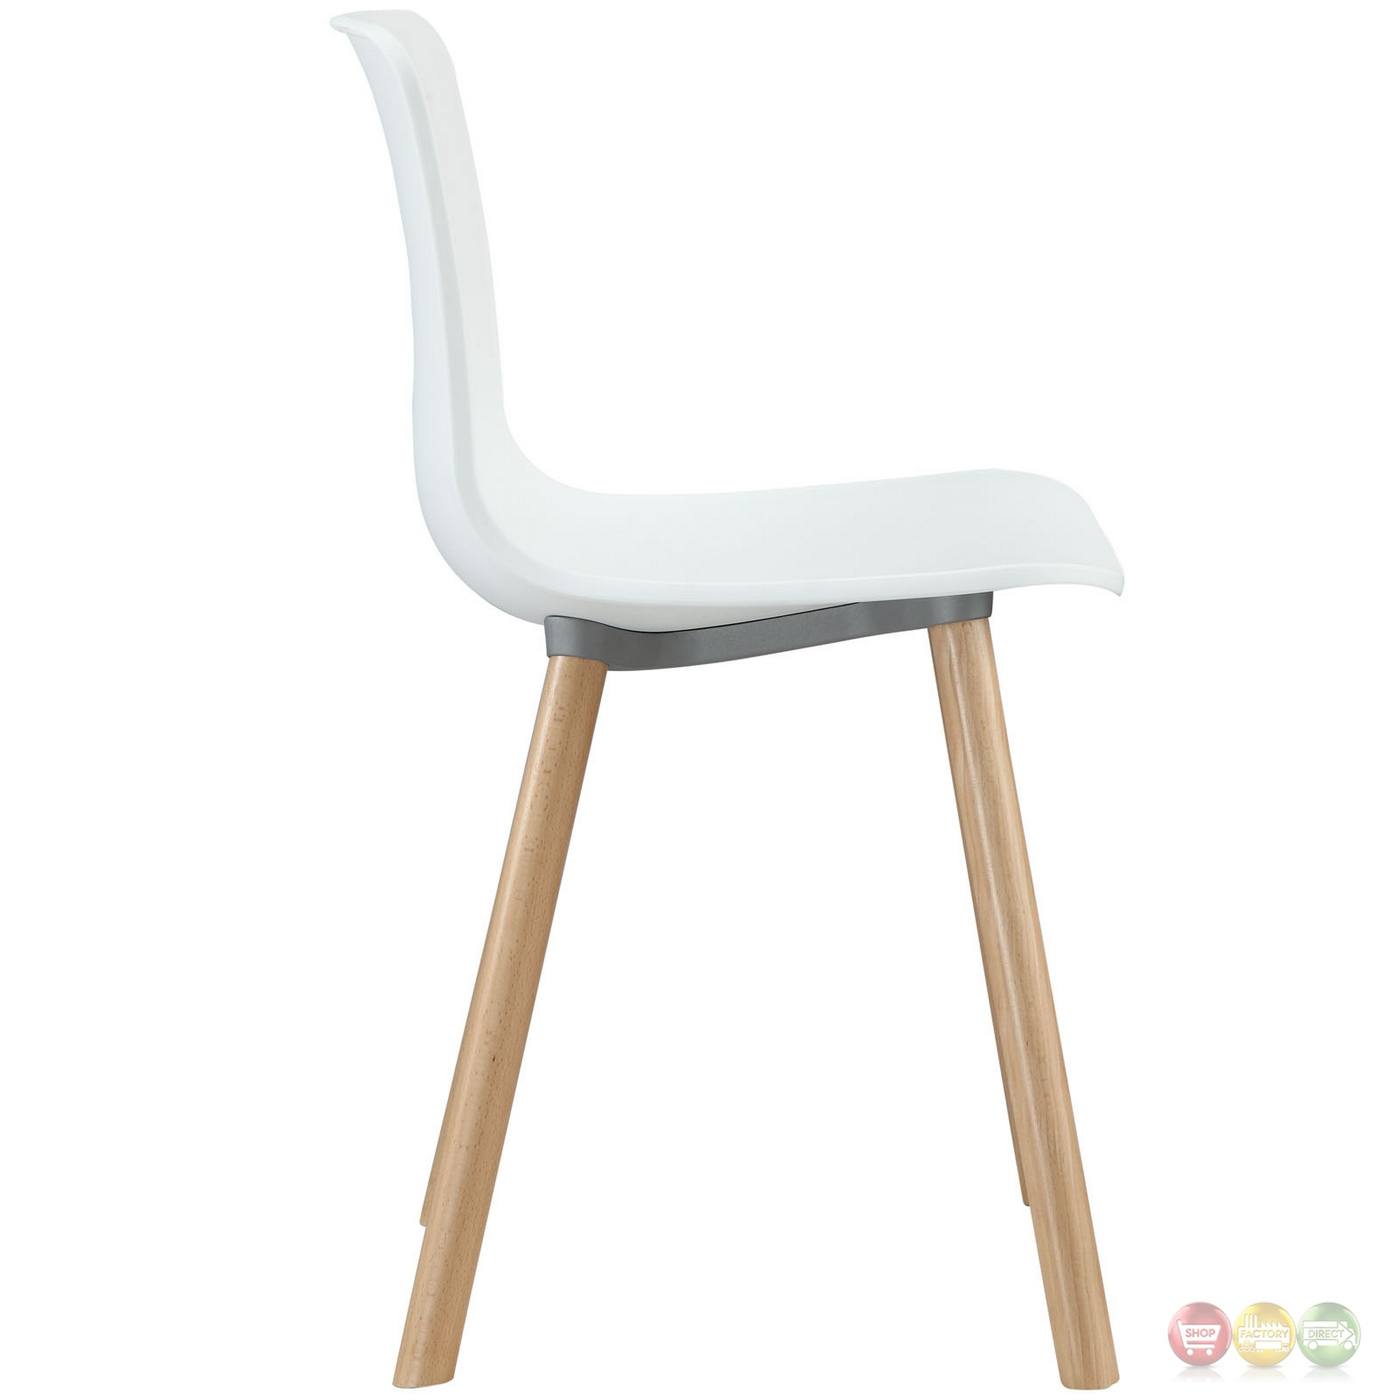 sprung modern molded plastic side chair with wood dowel. Black Bedroom Furniture Sets. Home Design Ideas